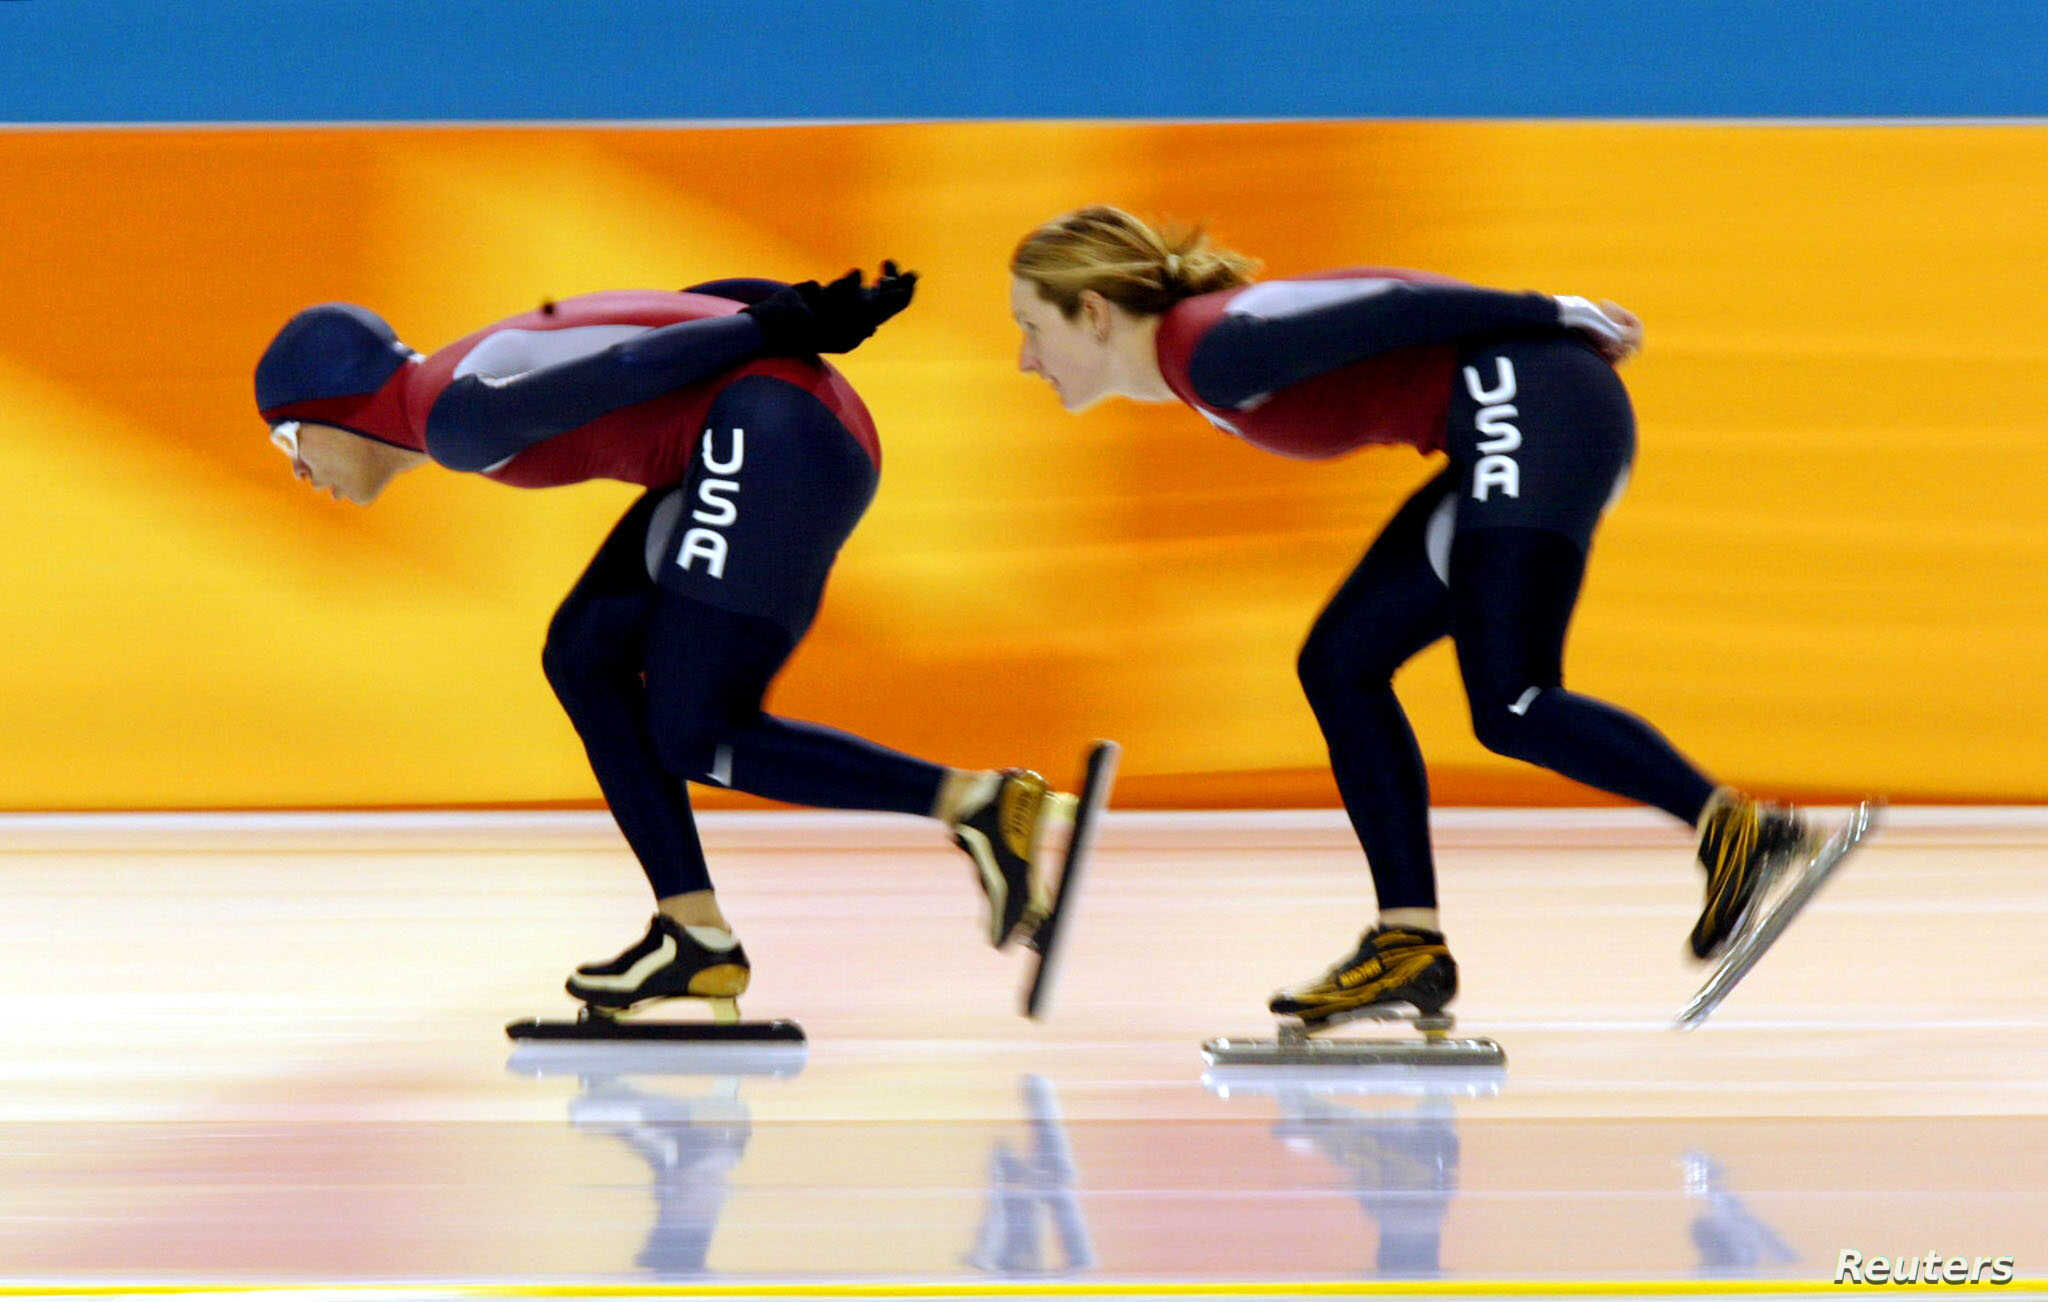 US speed skaters Derek Parra (L) and Jennifer Rodriguez work out at the Utah Olympic Oval in Salt Lake City, February 5, 2002.